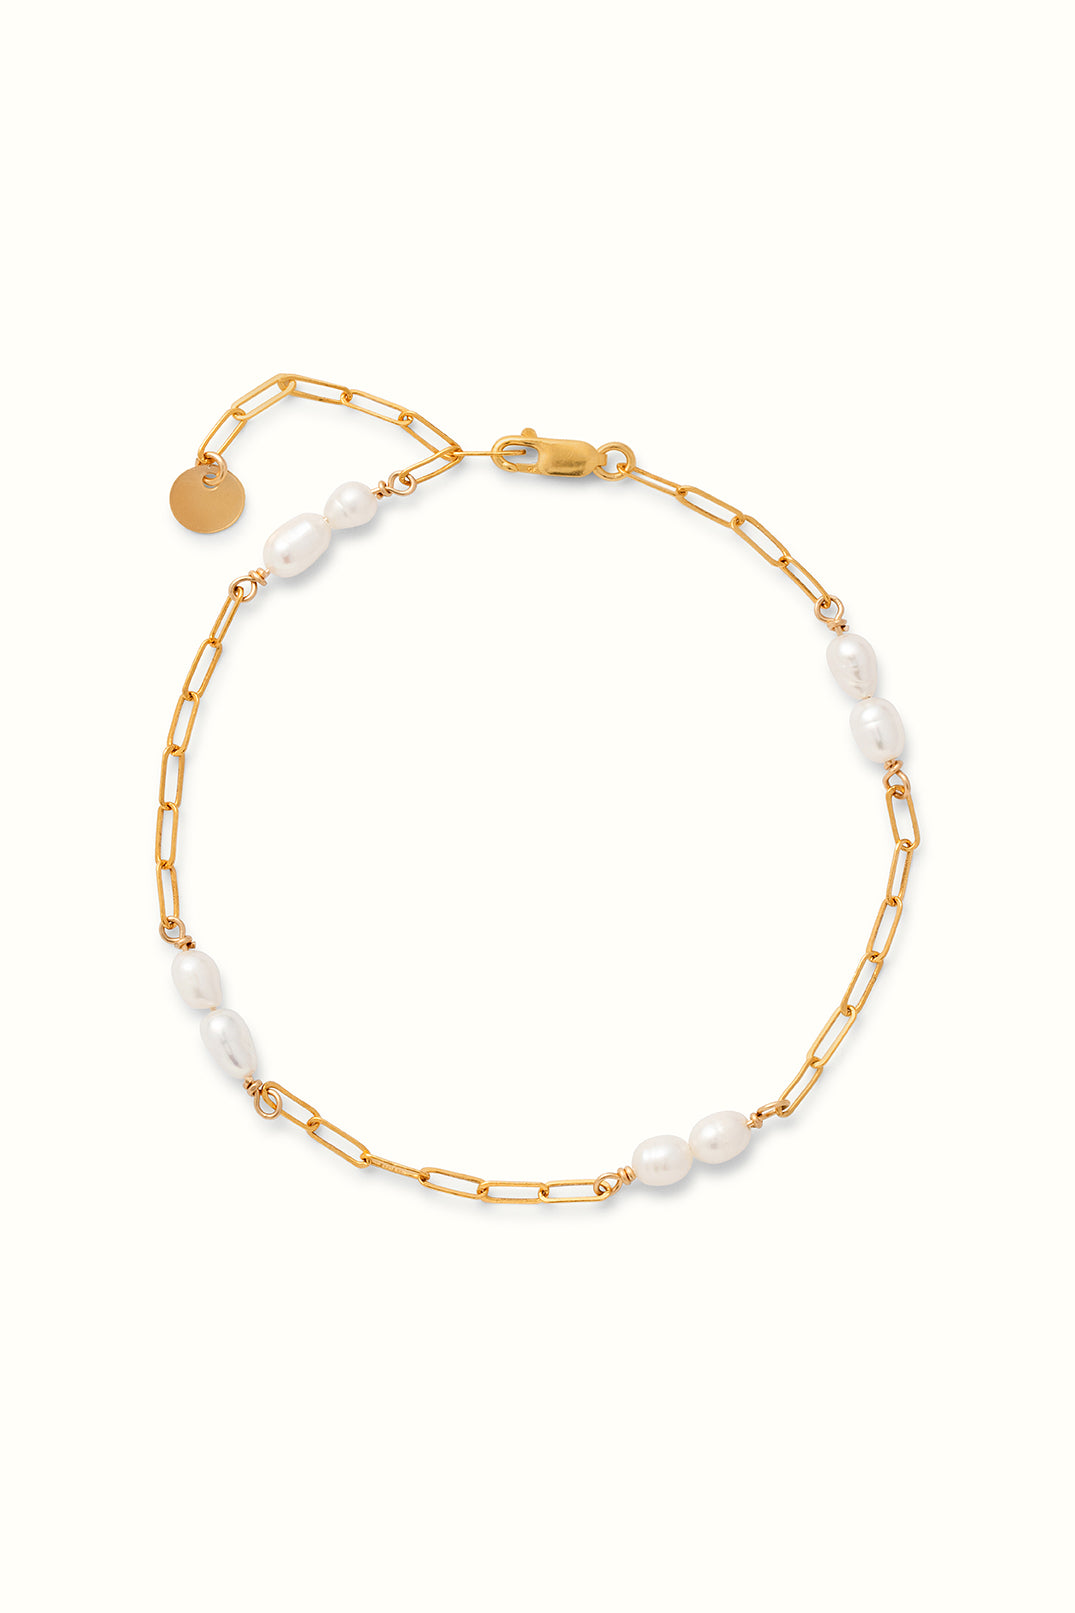 close up of a gold filled paperclip chain and pearl bracelet on a white surface